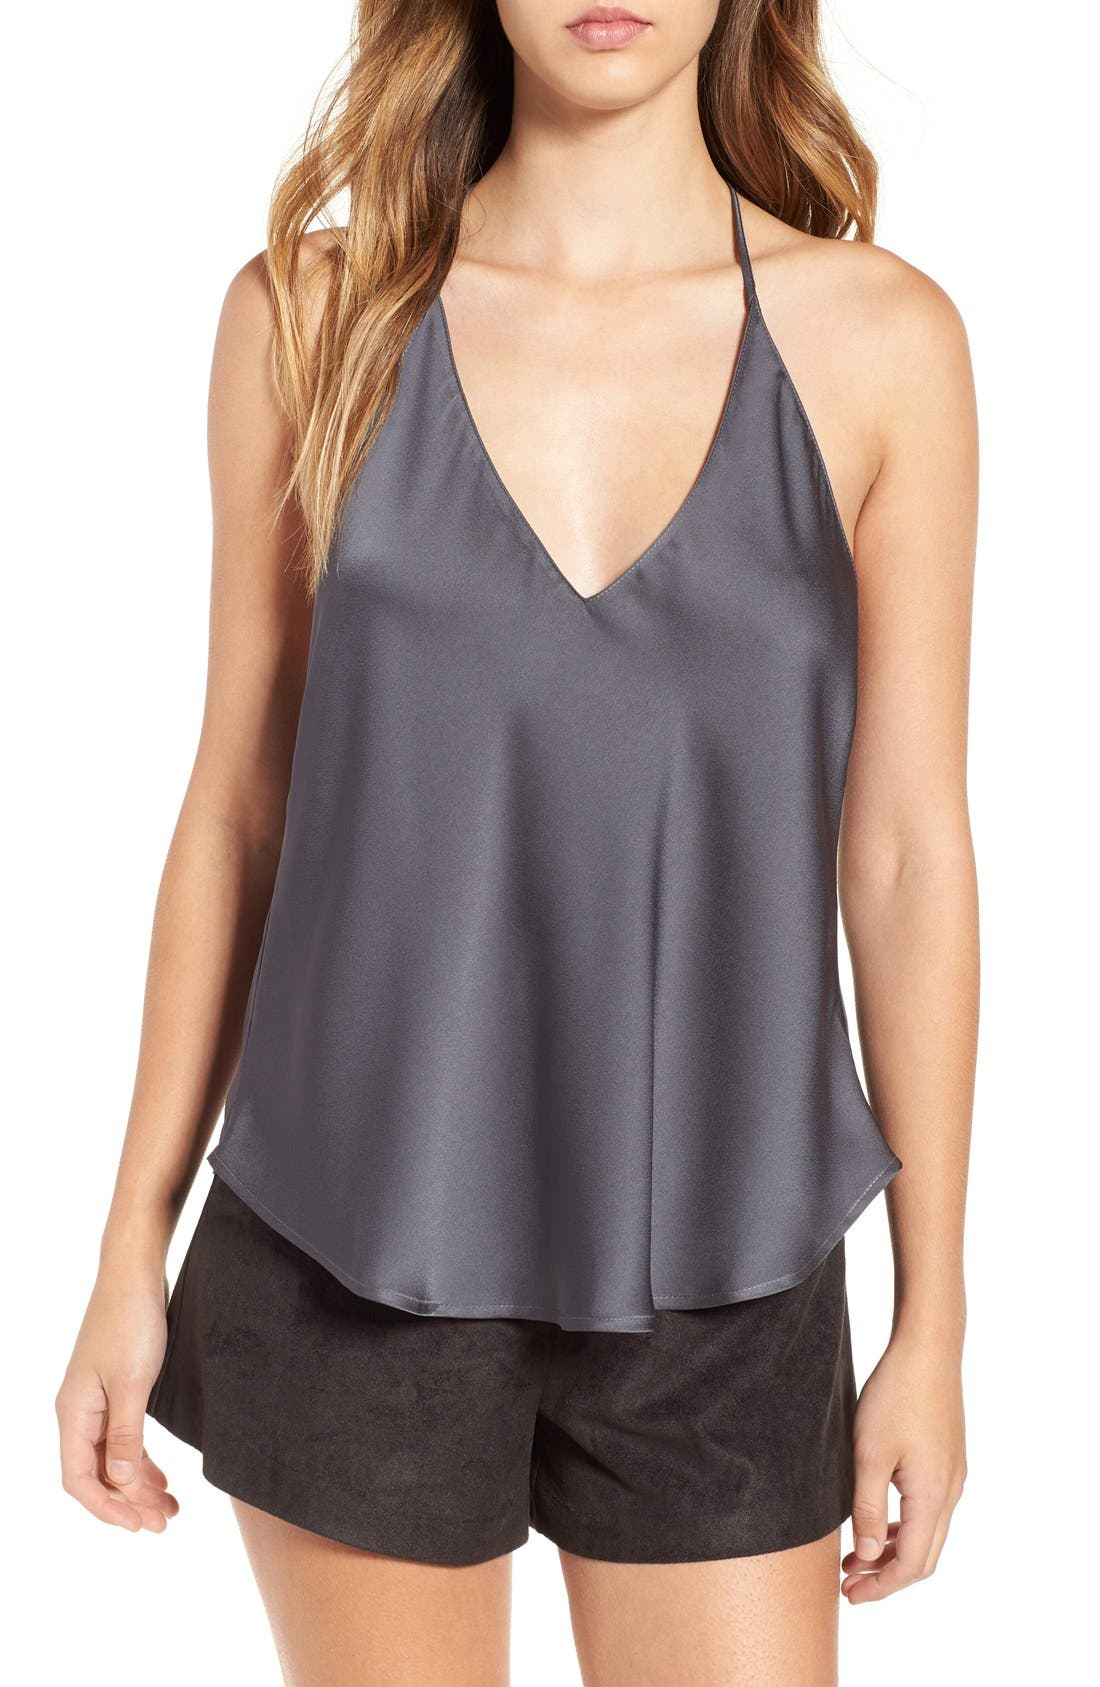 Alternate Image 1 Selected - ASTR Satin T-Back Camisole